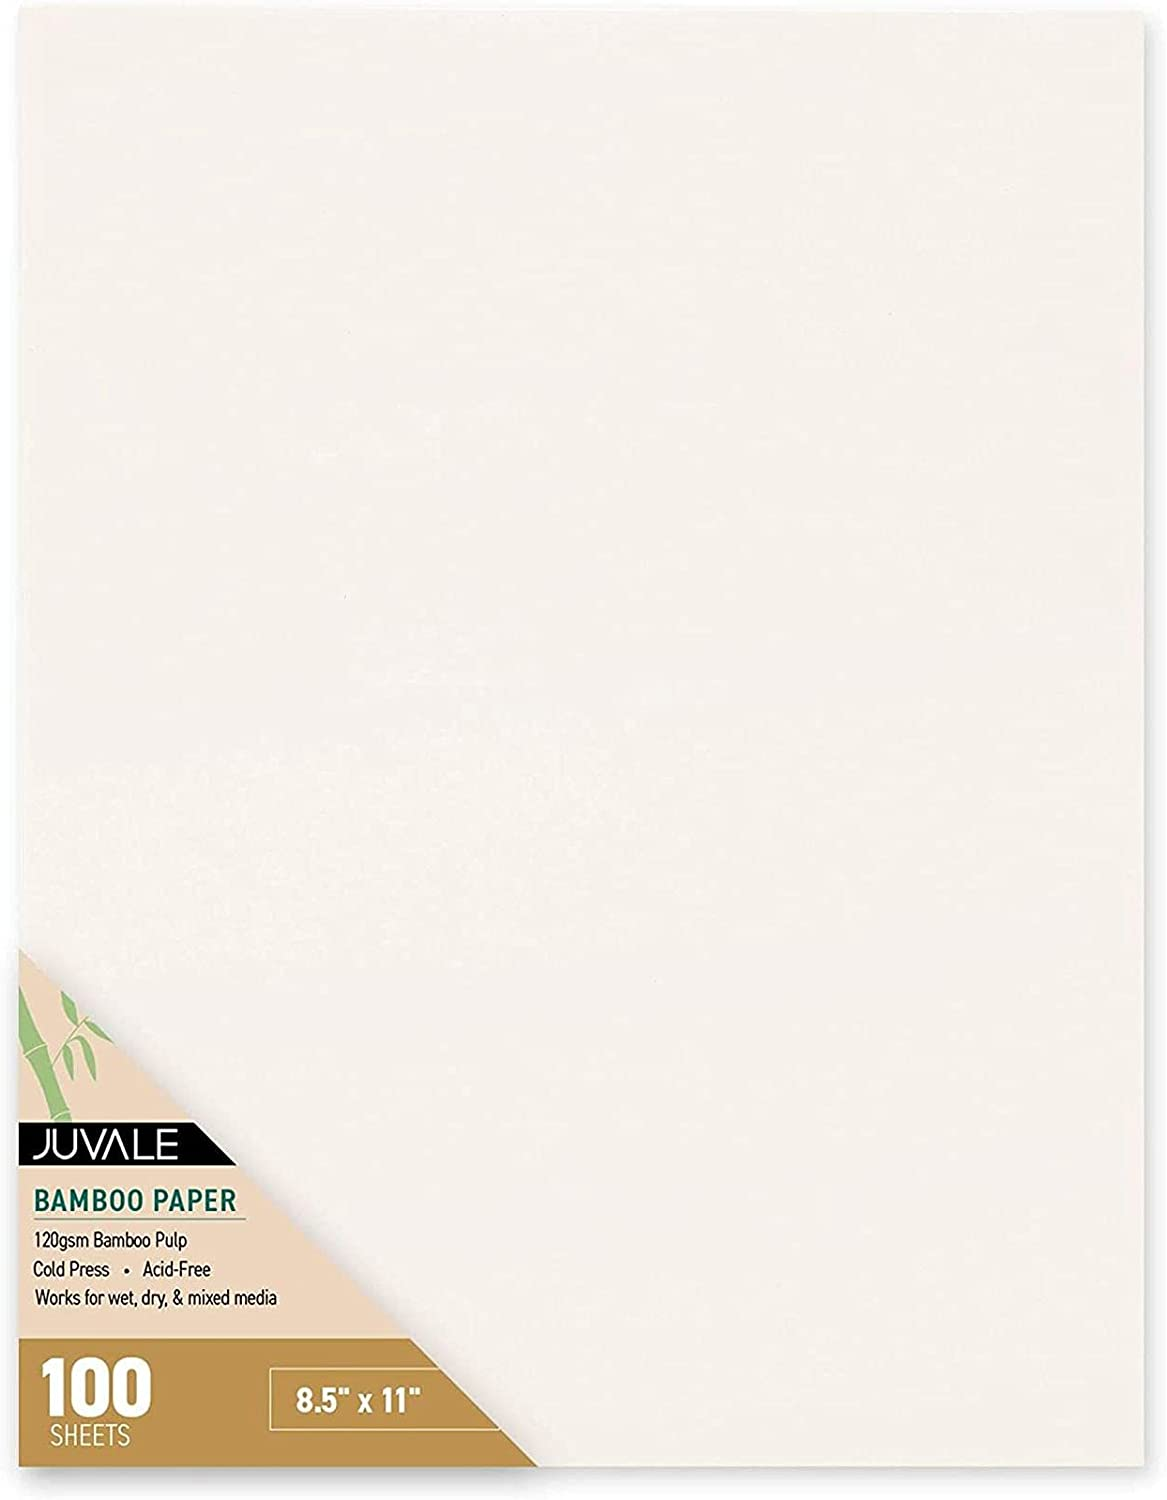 100 Cold Press Bamboo Paper Sheets for Mixed Media, Drawing, Painting (8.5 x 11 in) : Arts, Crafts & Sewing